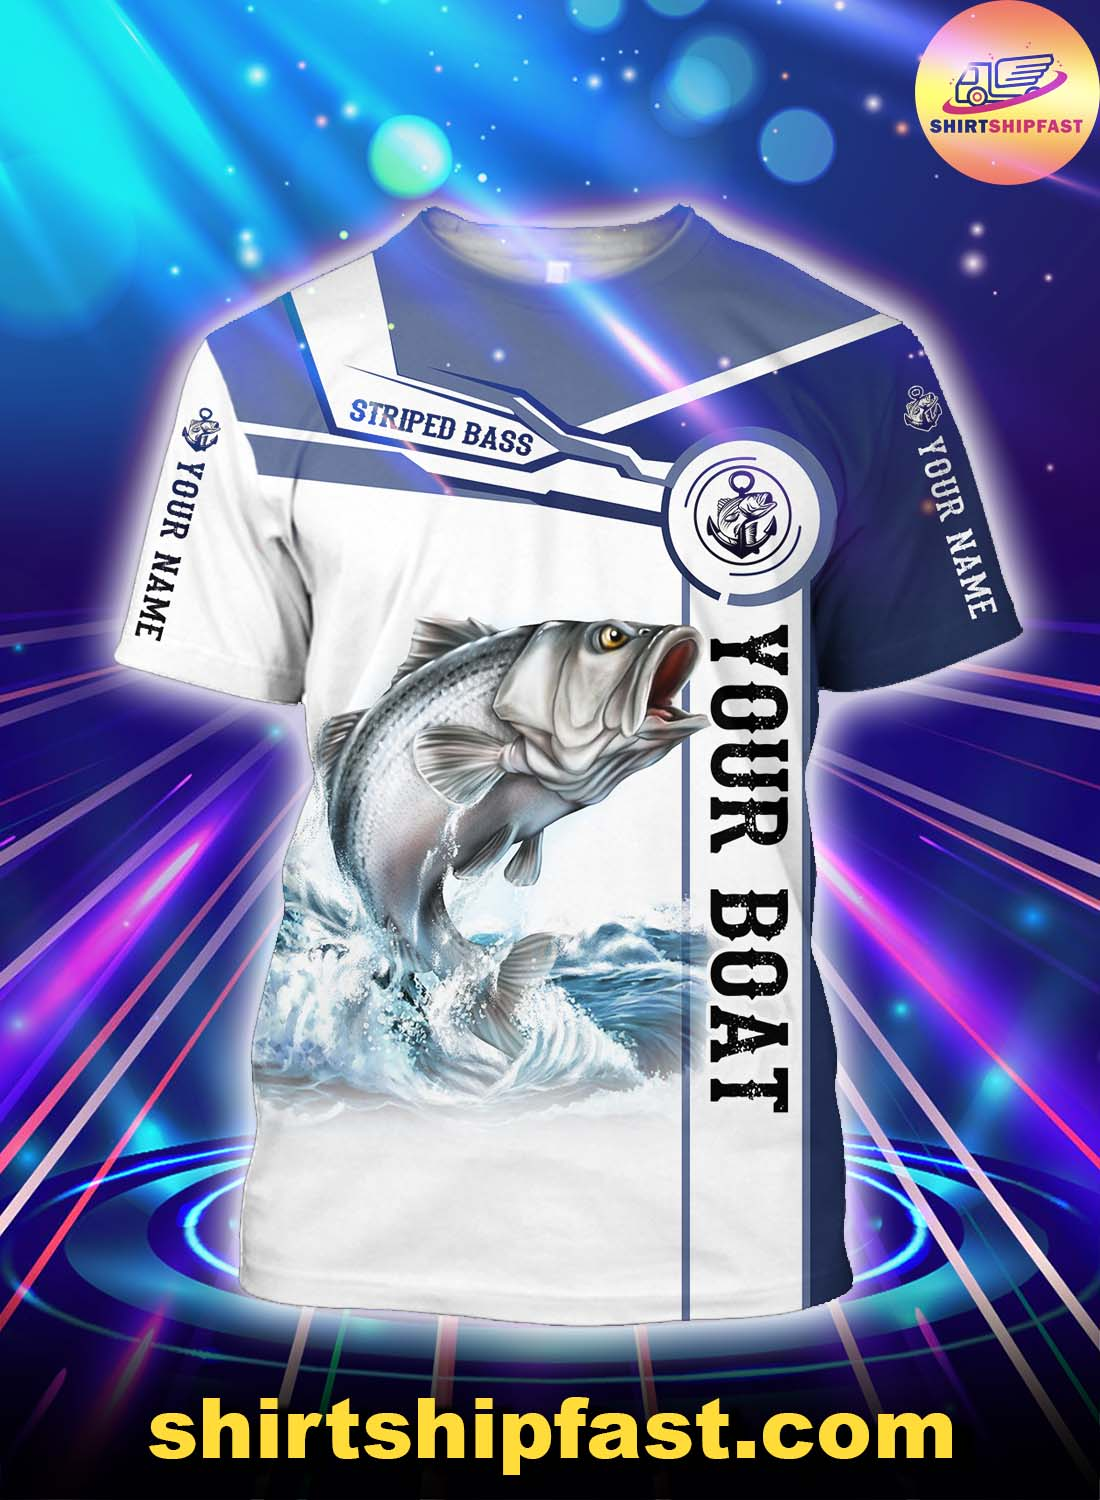 Personalized striped bass fishing catch and release 3d t-shirt